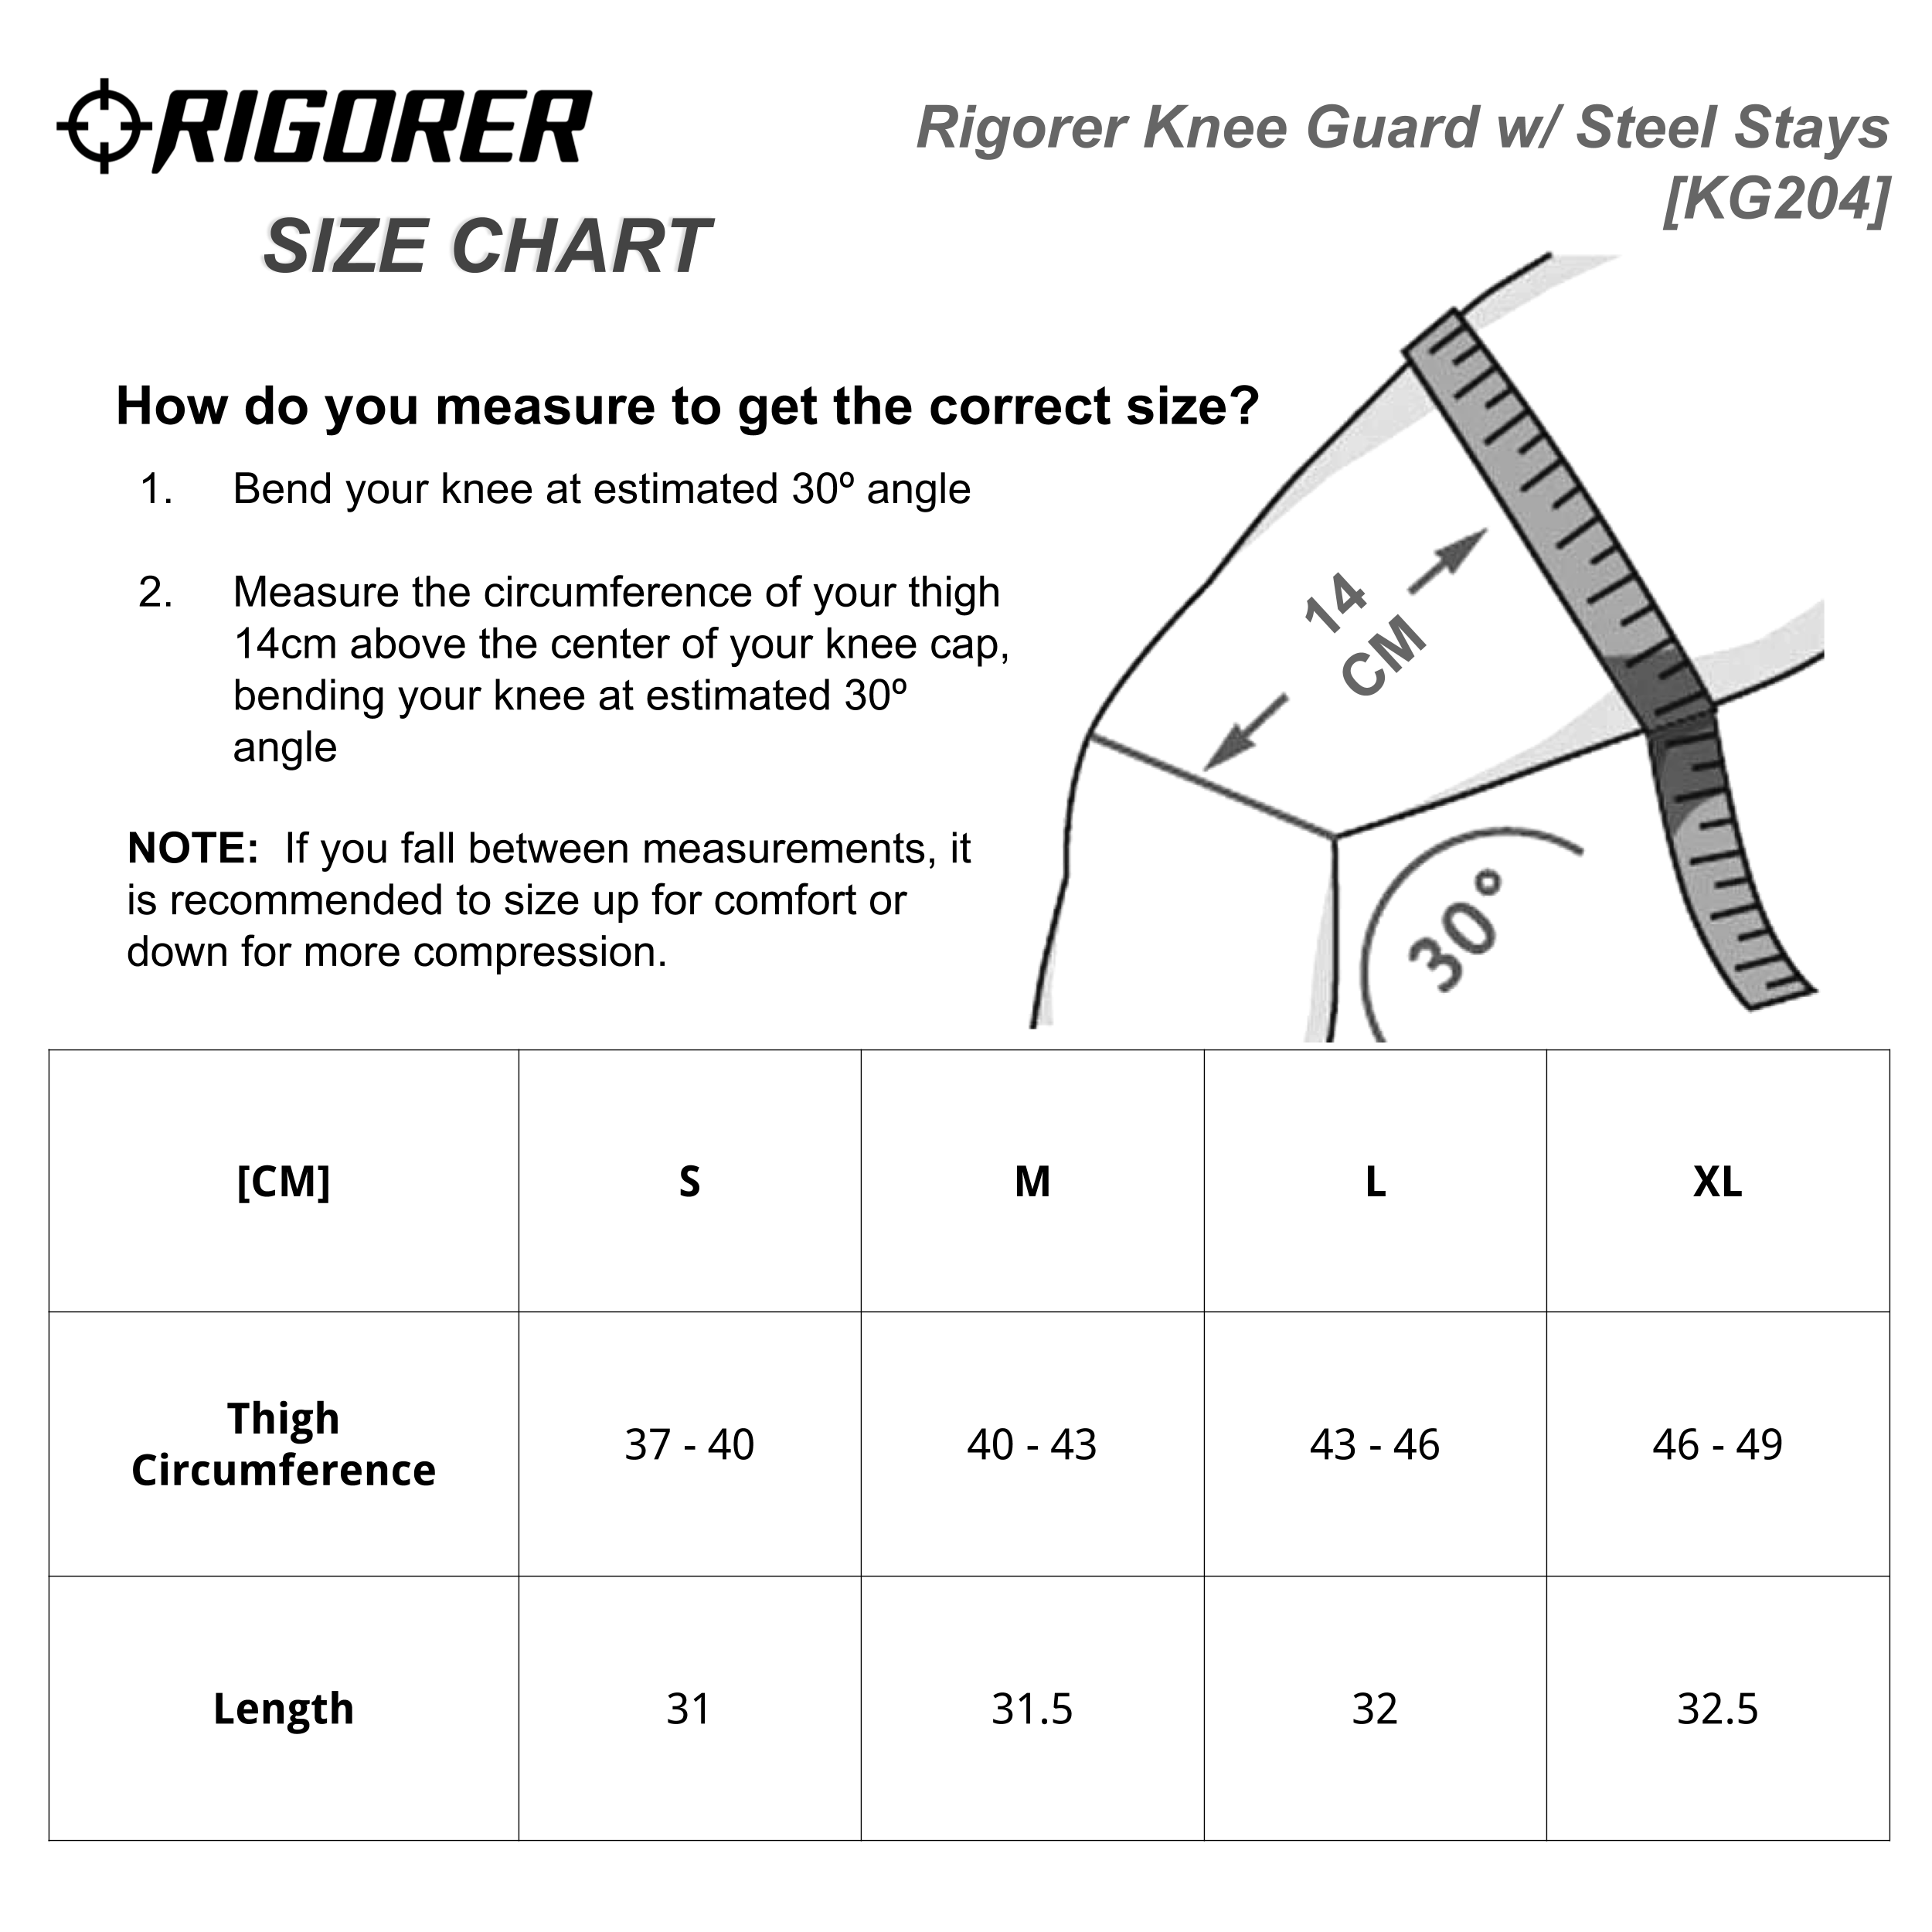 Rigorer Knee Guard w/ Steel Stays [KG204] Sizing Chart